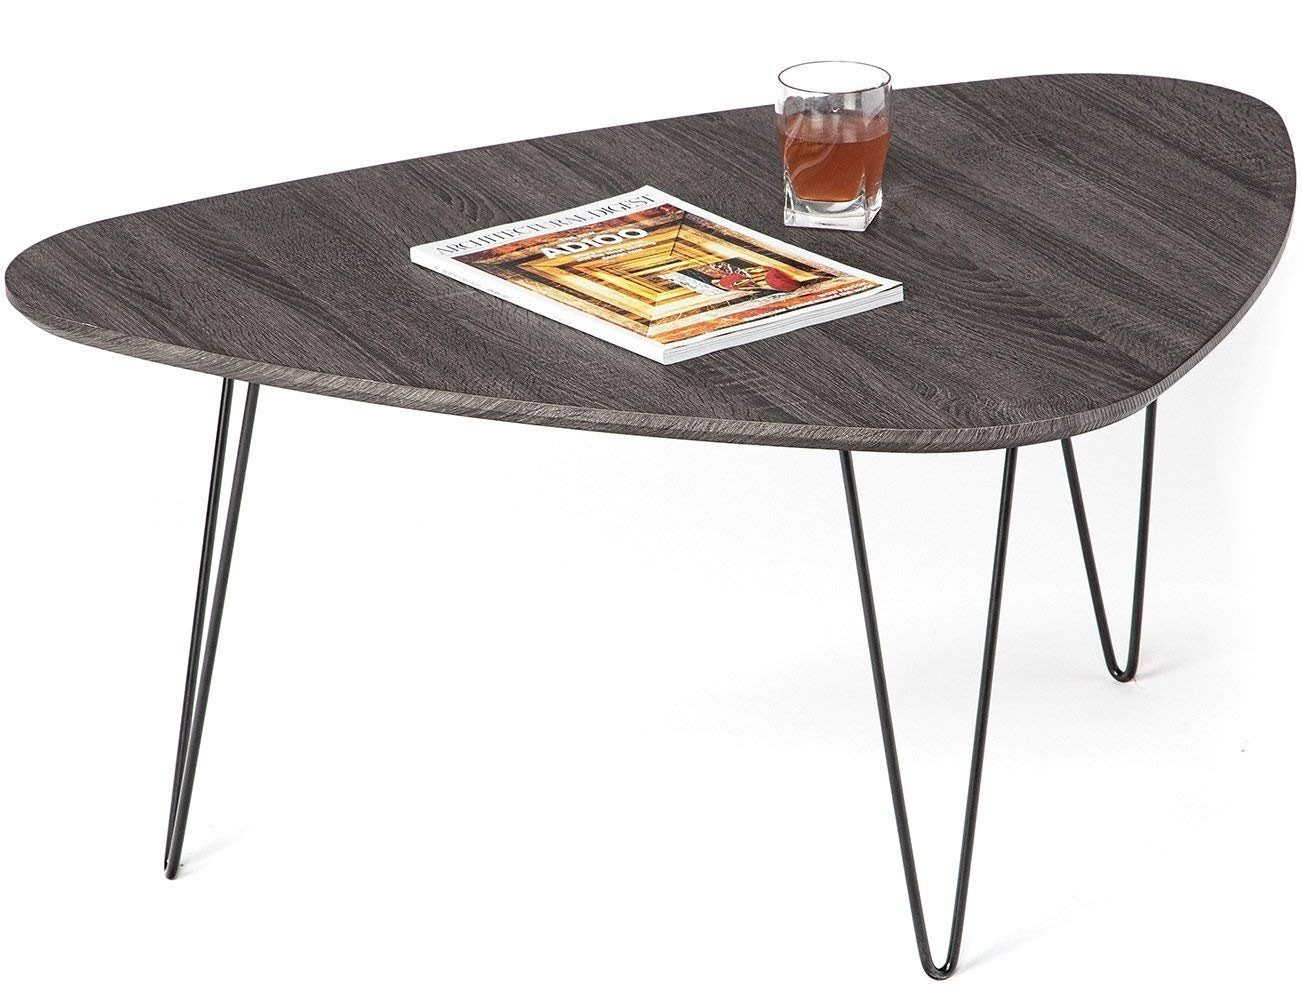 Toys Studio Coffee Table Triangle Wood End table with Durable Steel Legs for Living Room Balcony and Office (Brushed Black Oak)